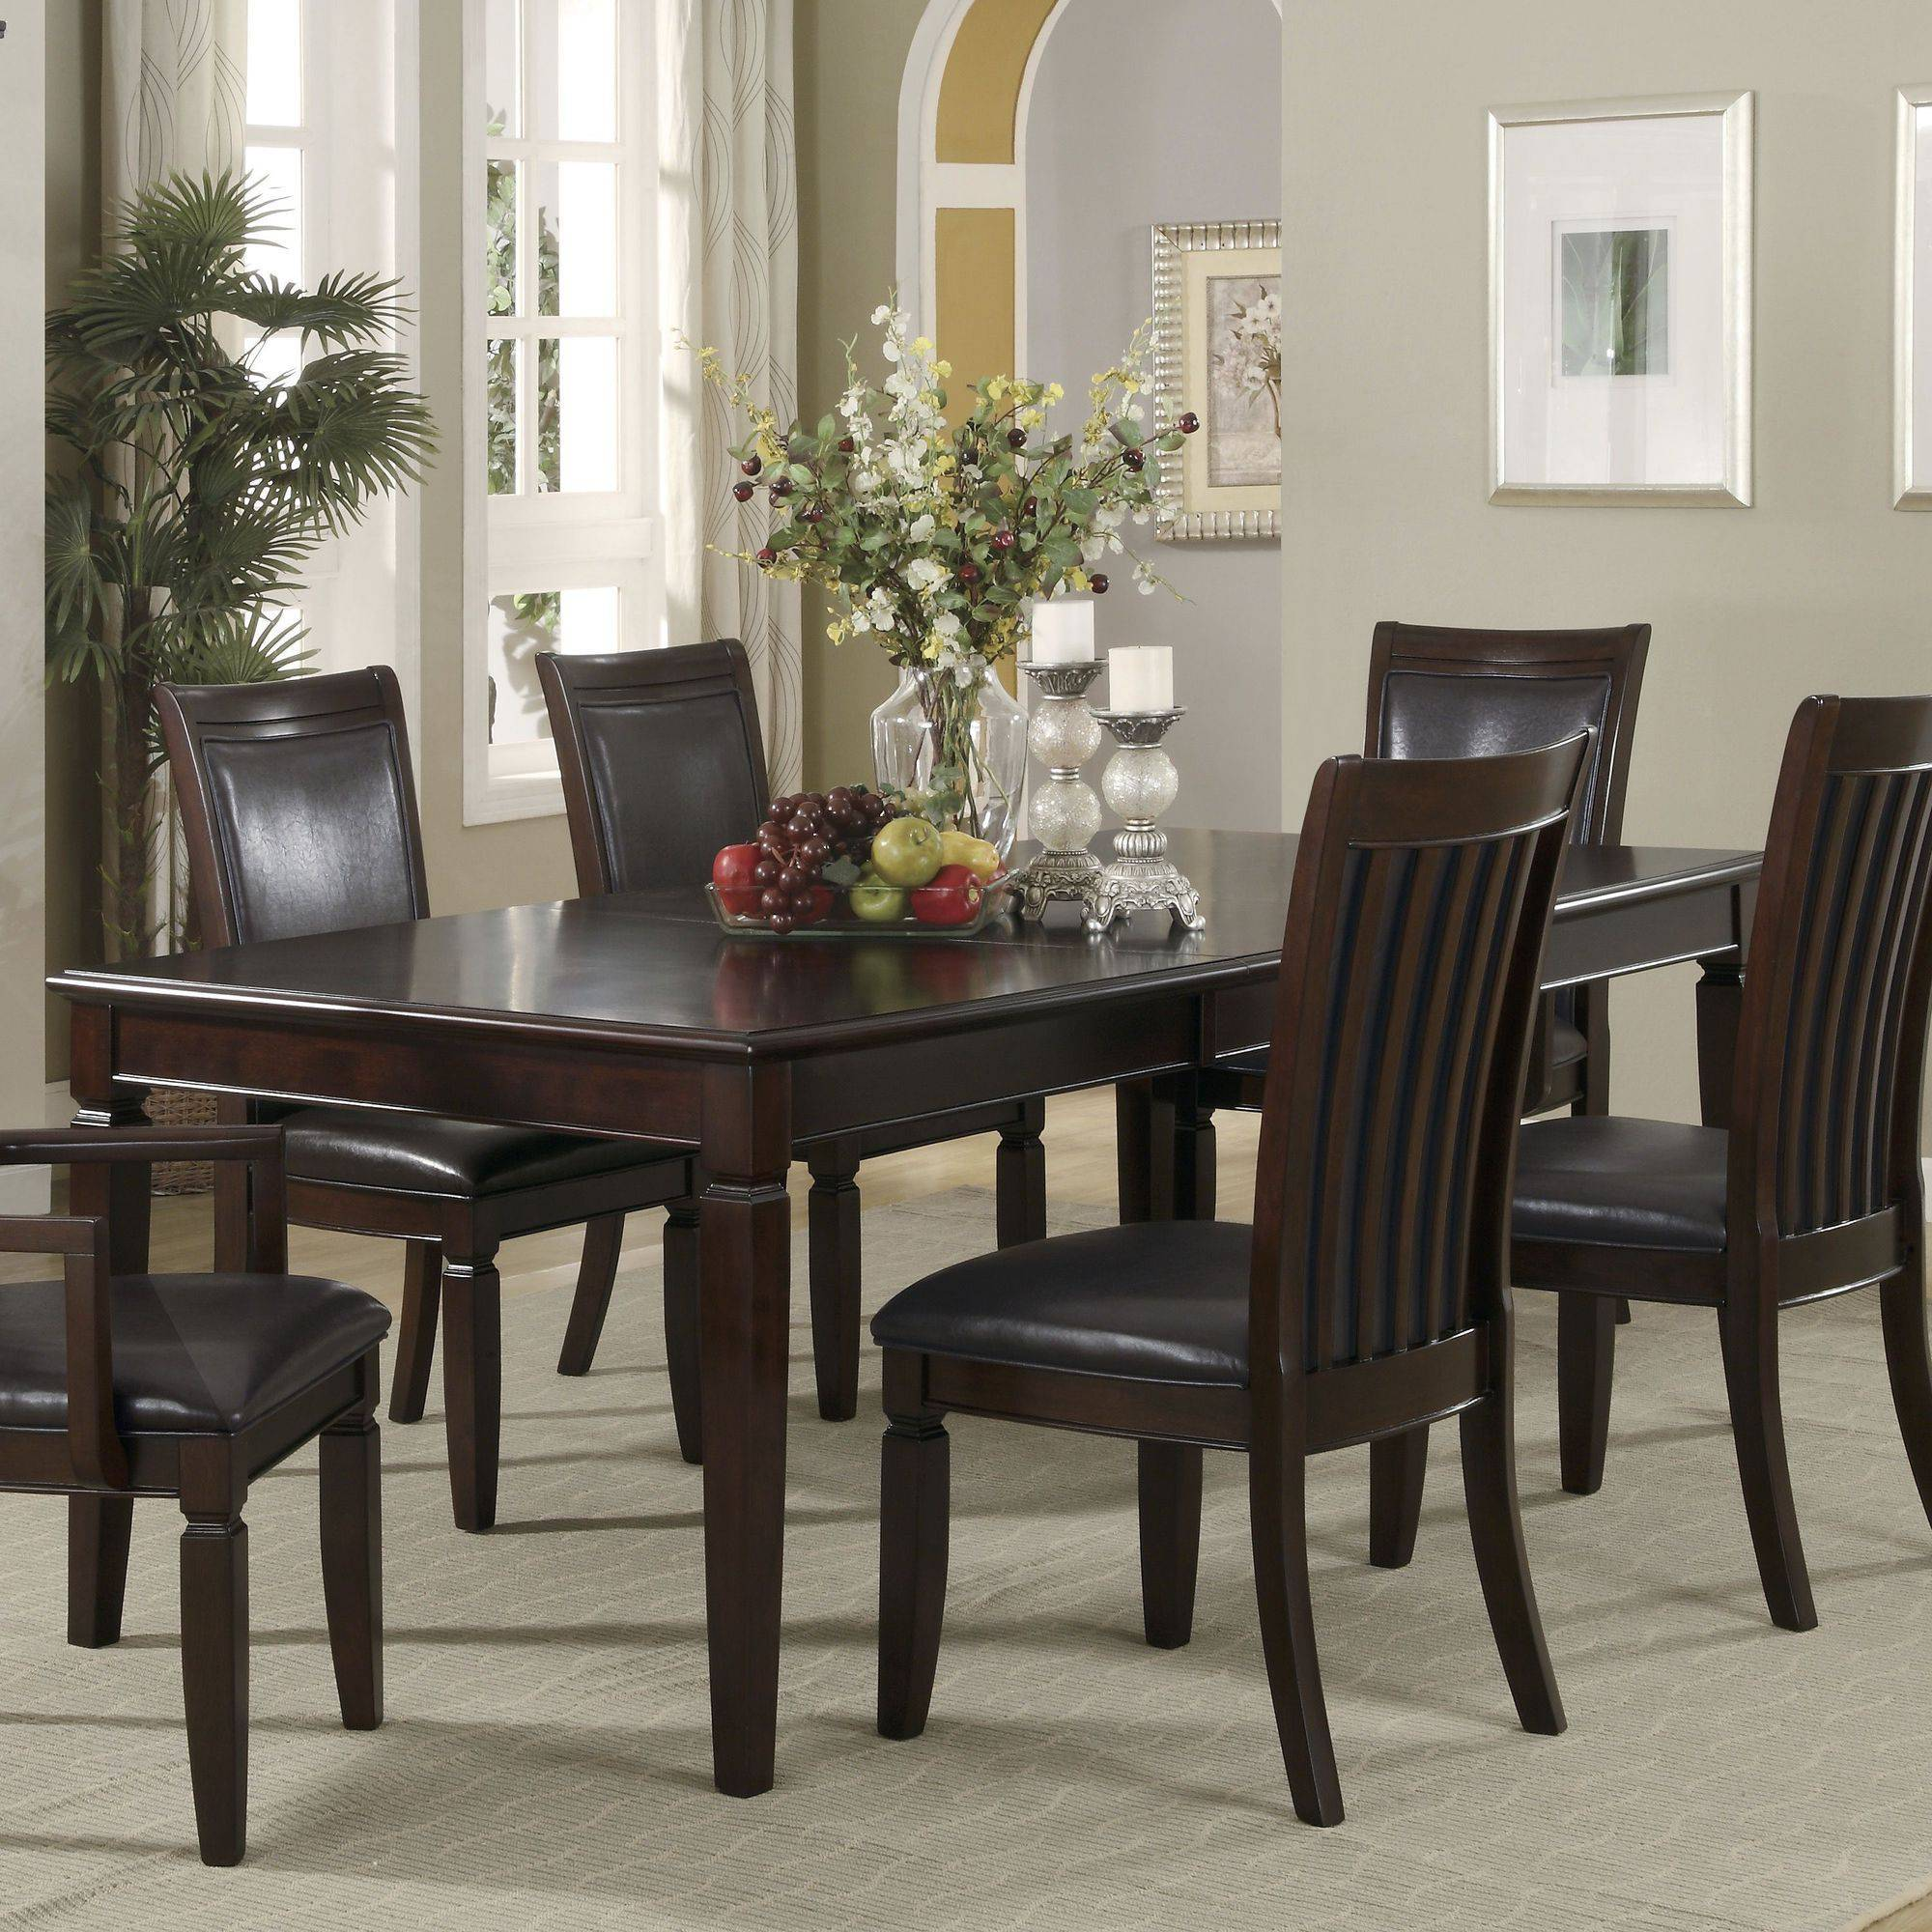 Coaster Company Ramona Dining Collection, Dining Table